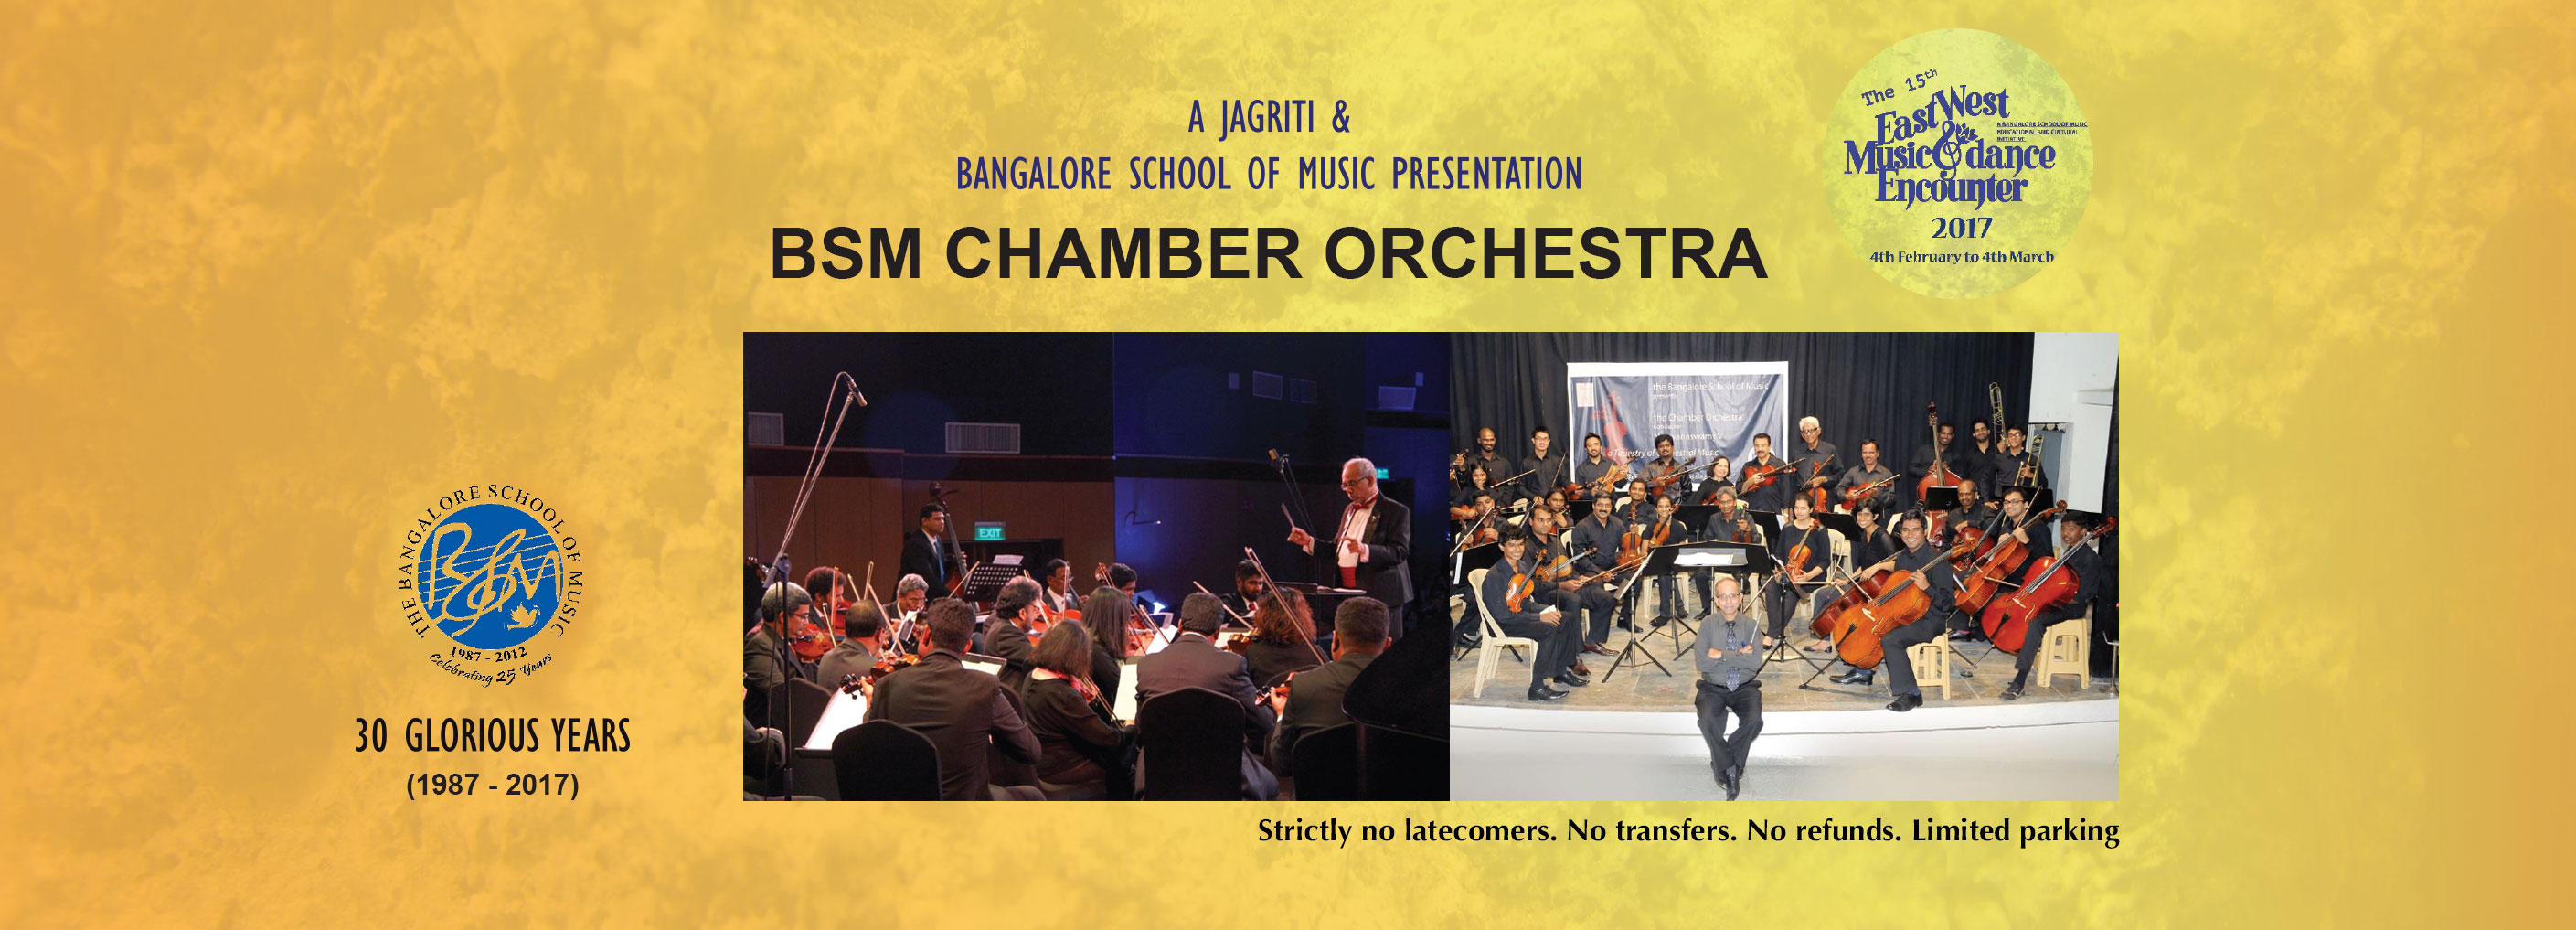 The Bangalore School of Music Chamber Orchestra